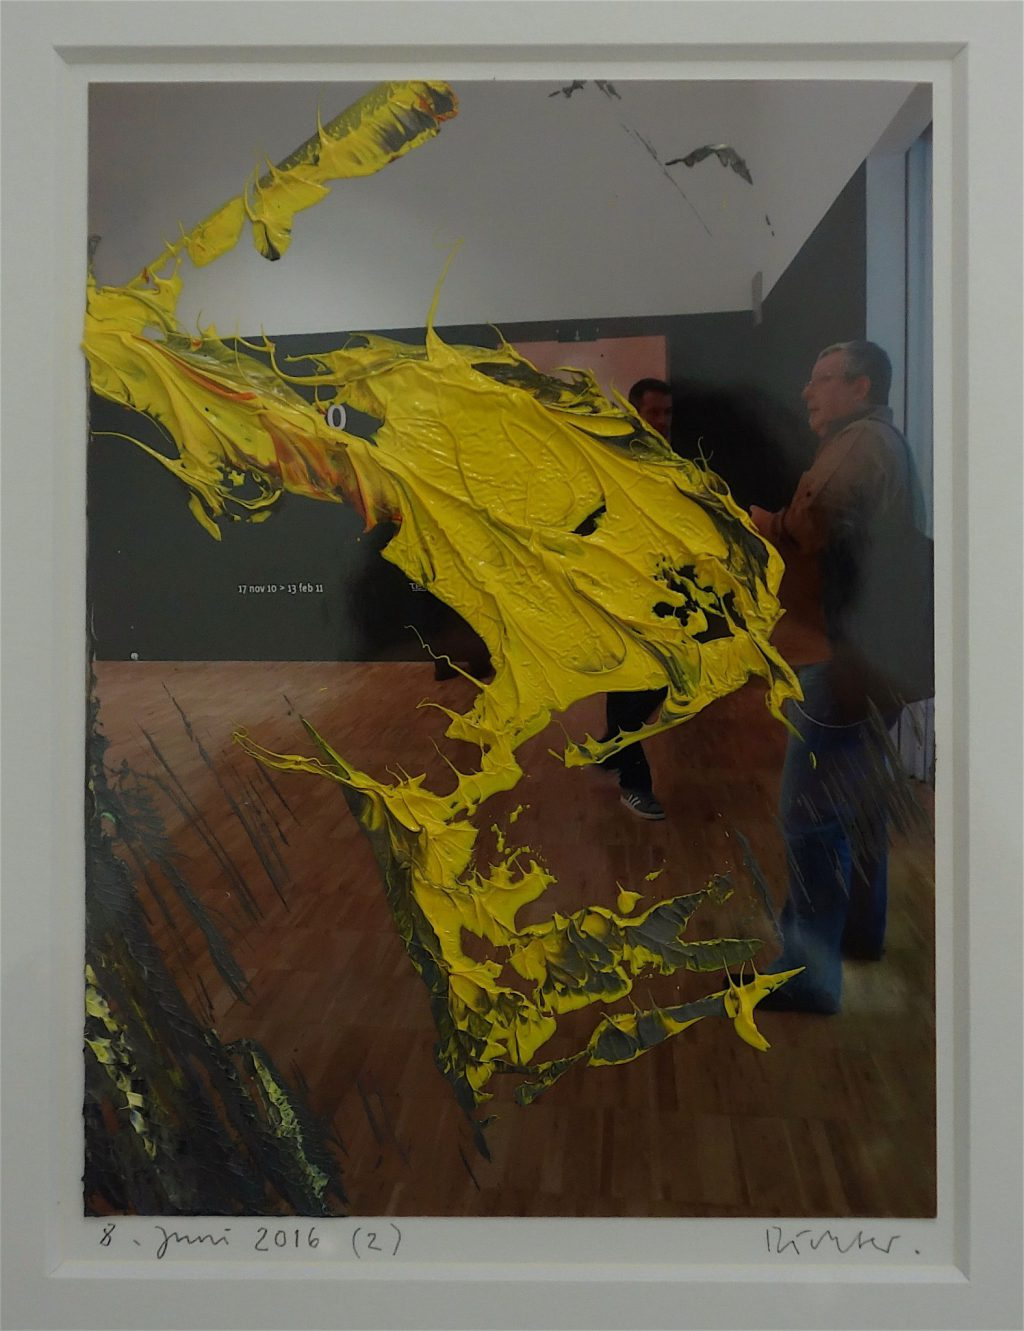 Work by Gerhard Richter, oil on photograph 2016 @ WAKO WORKS OF ART